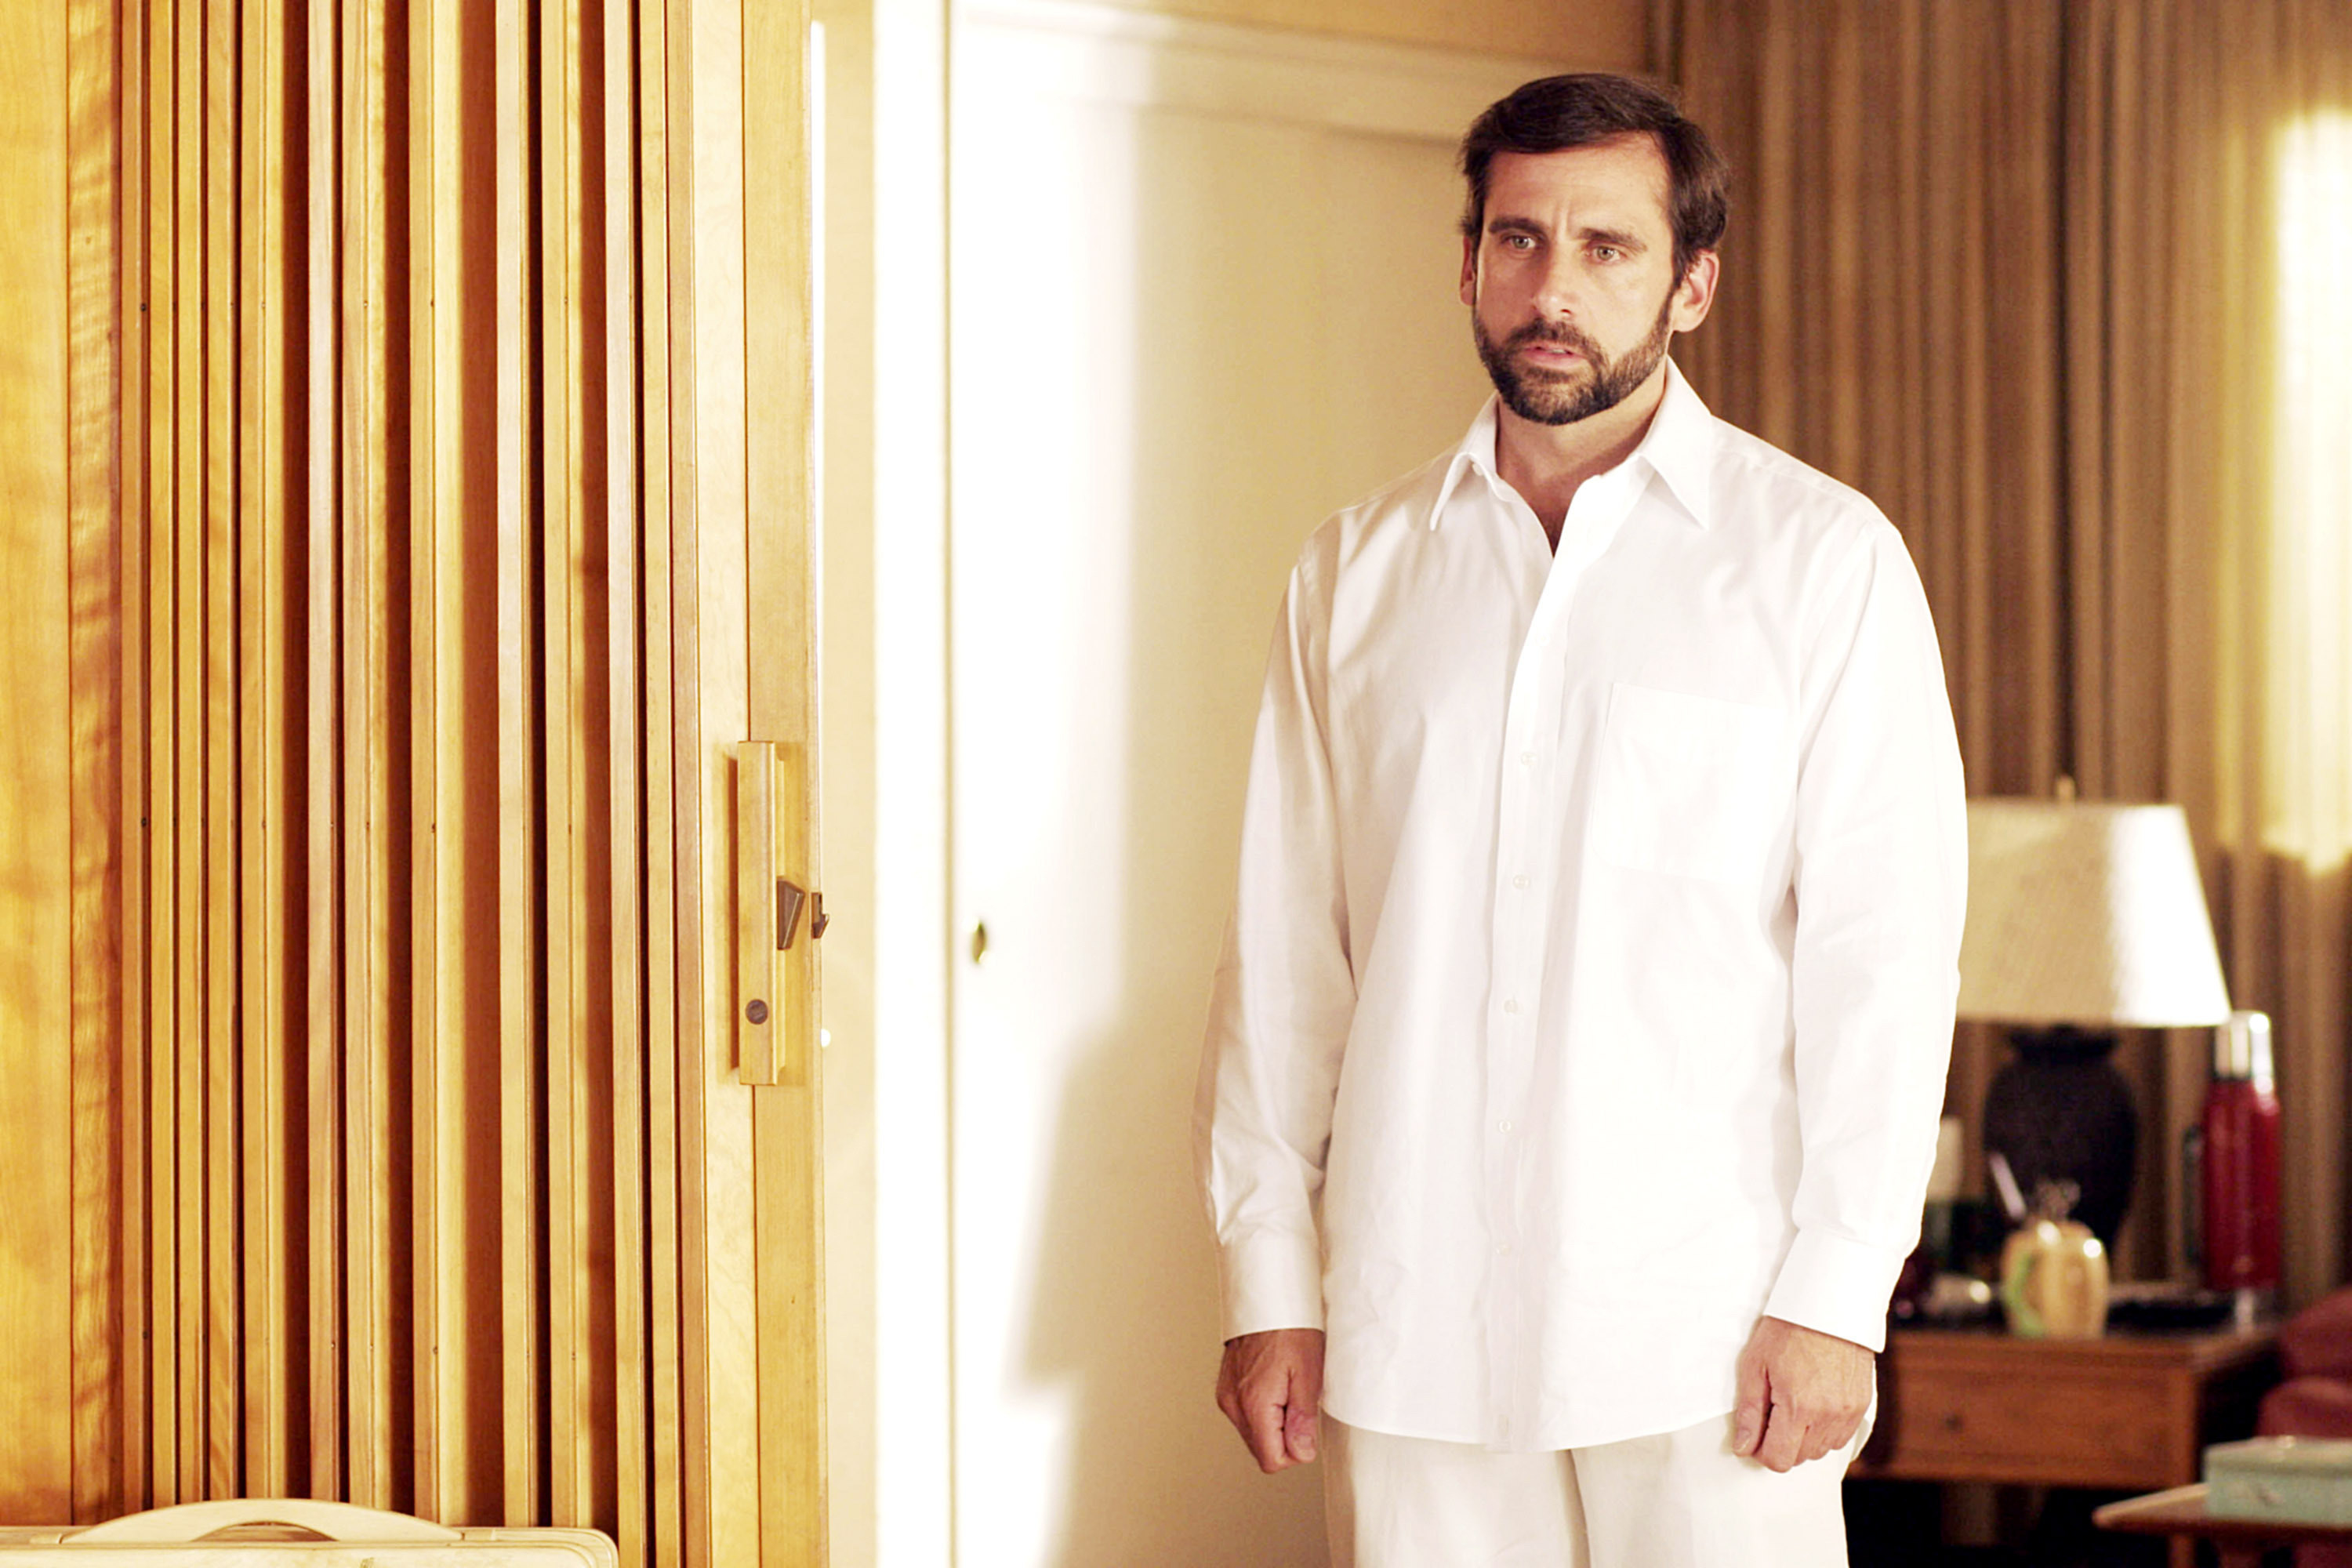 Steve Carell, all in white, looking depressed